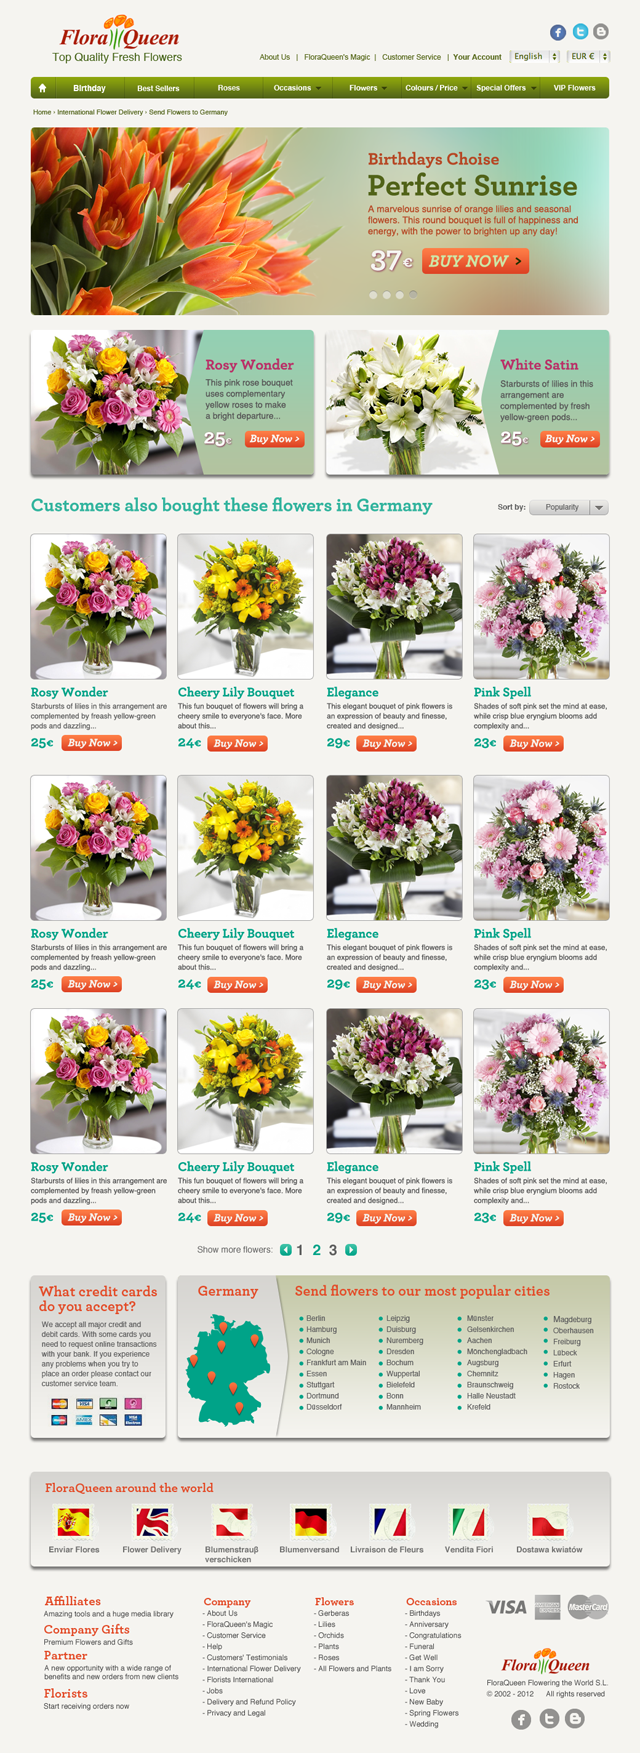 send-premium-flowers-to-germany-online-flower-delivery_1338995722391_orangemain-copy